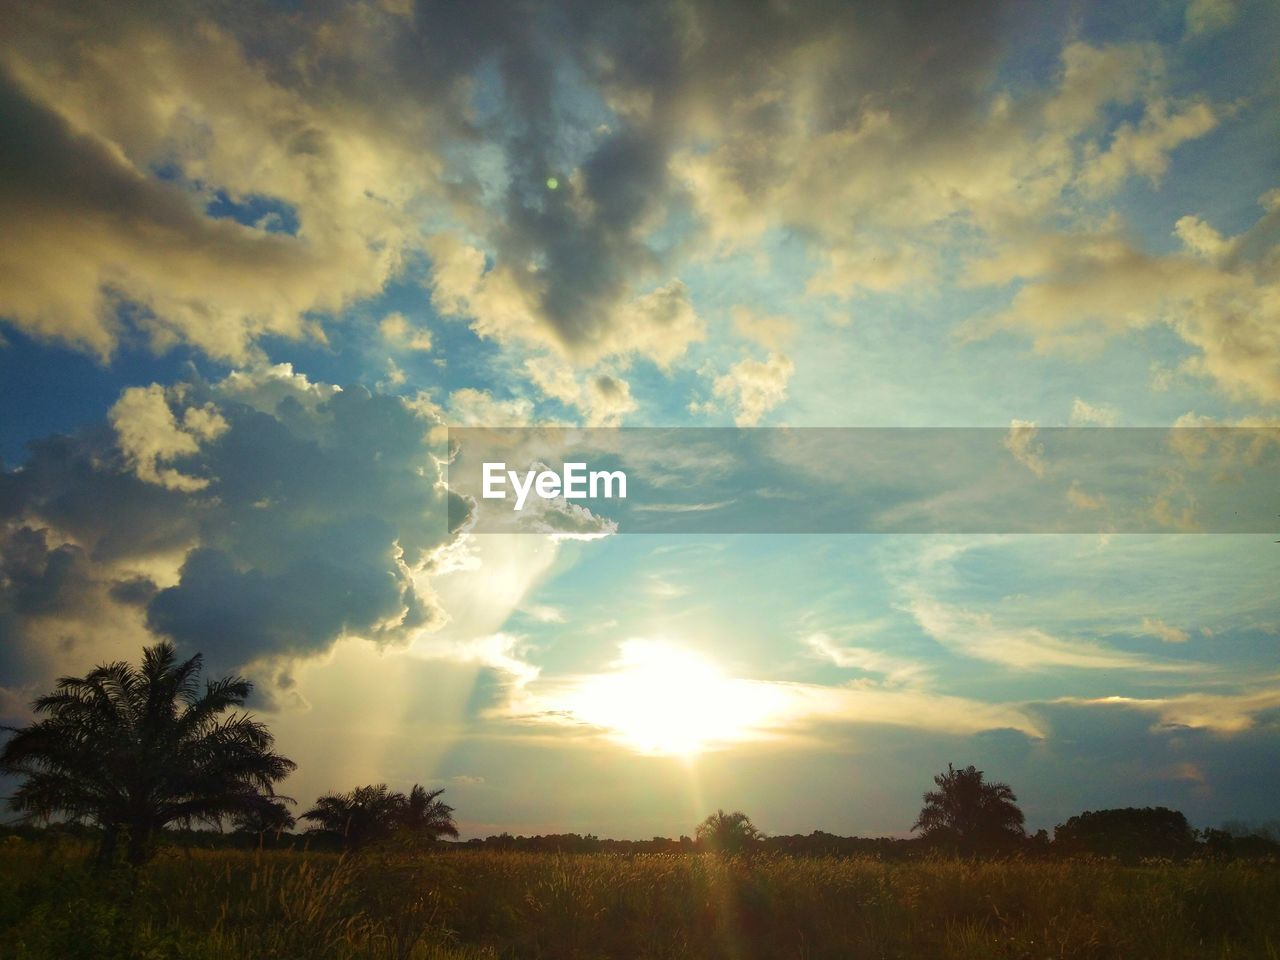 cloud - sky, sky, beauty in nature, scenics - nature, tranquility, tranquil scene, tree, plant, sunset, landscape, nature, environment, no people, non-urban scene, field, land, outdoors, sunlight, idyllic, low angle view